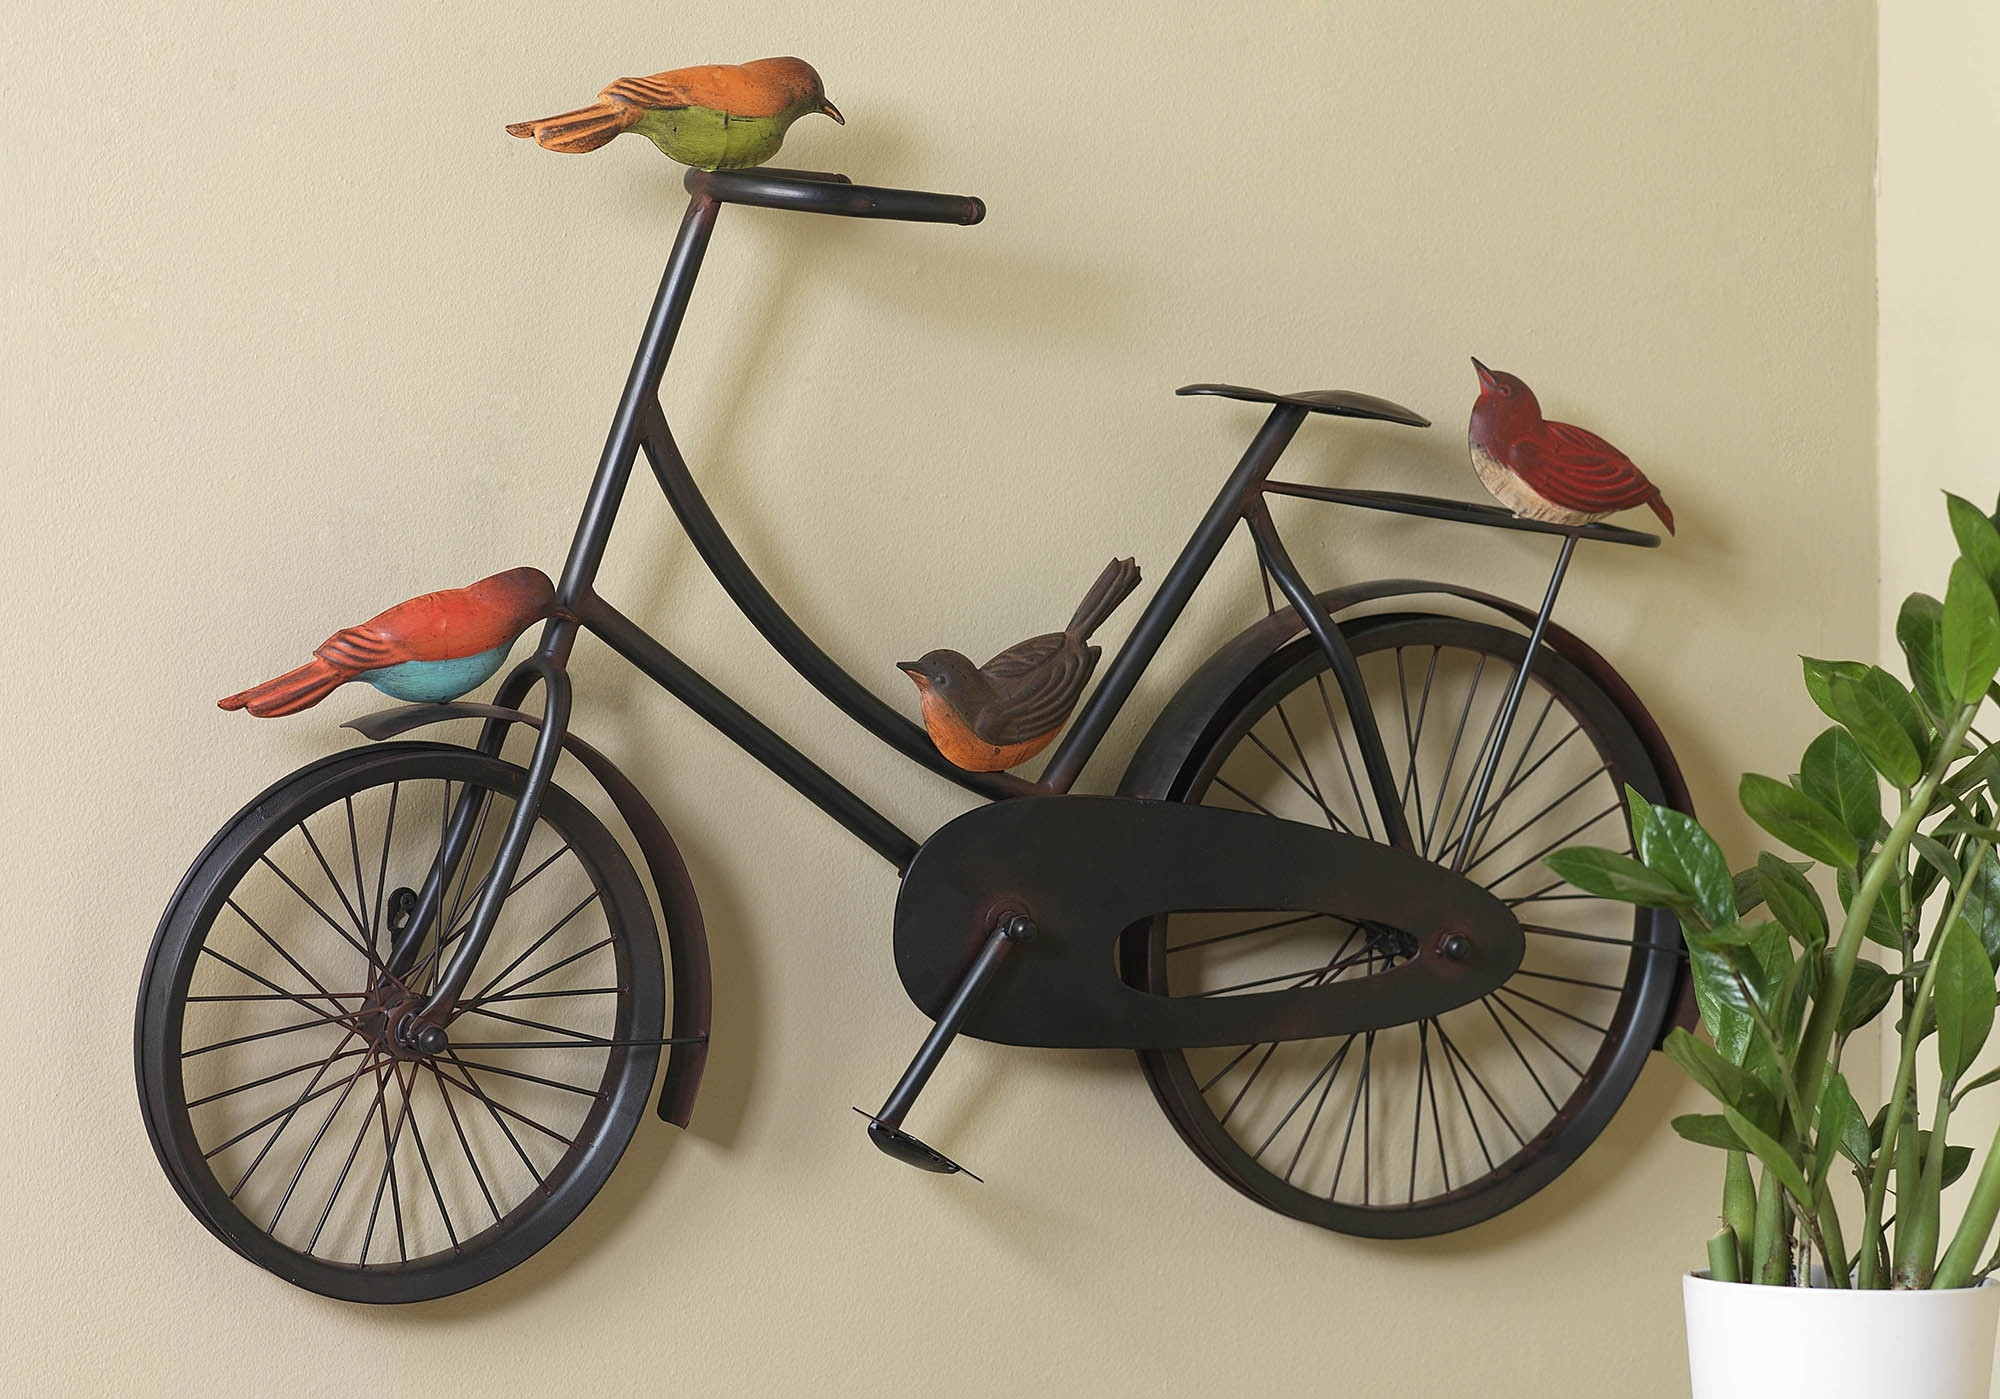 37 Bicycle Wall Art, Iron Bicycle Wall Art Black Wood Frame Fathers Within Most Up To Date Bicycle Wall Art (View 8 of 20)